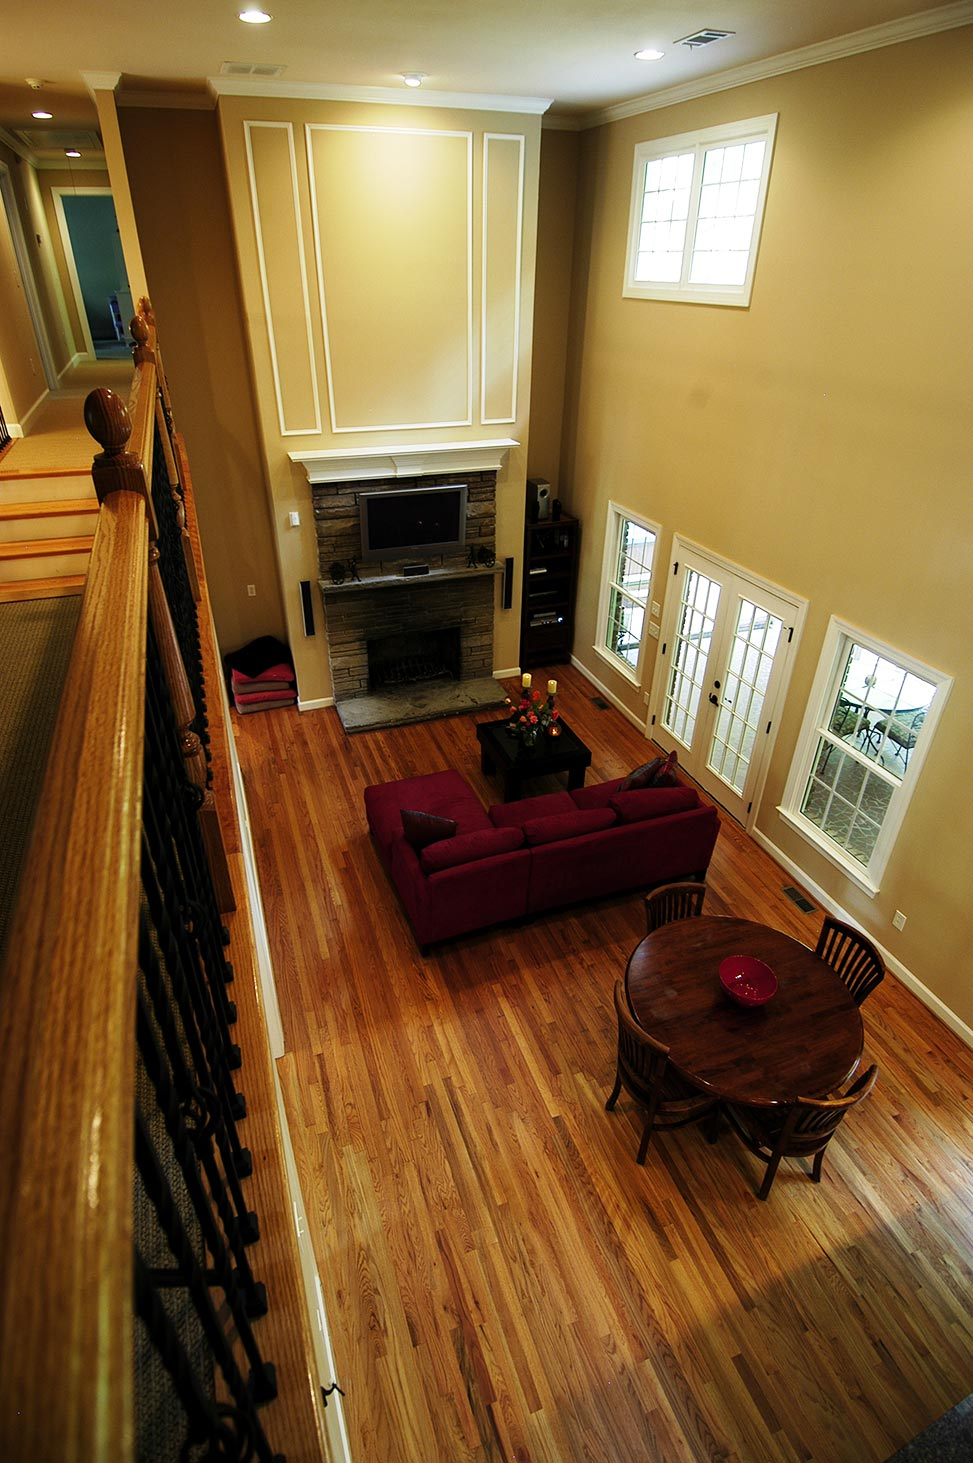 View of living room and fireplace from second floor balcony